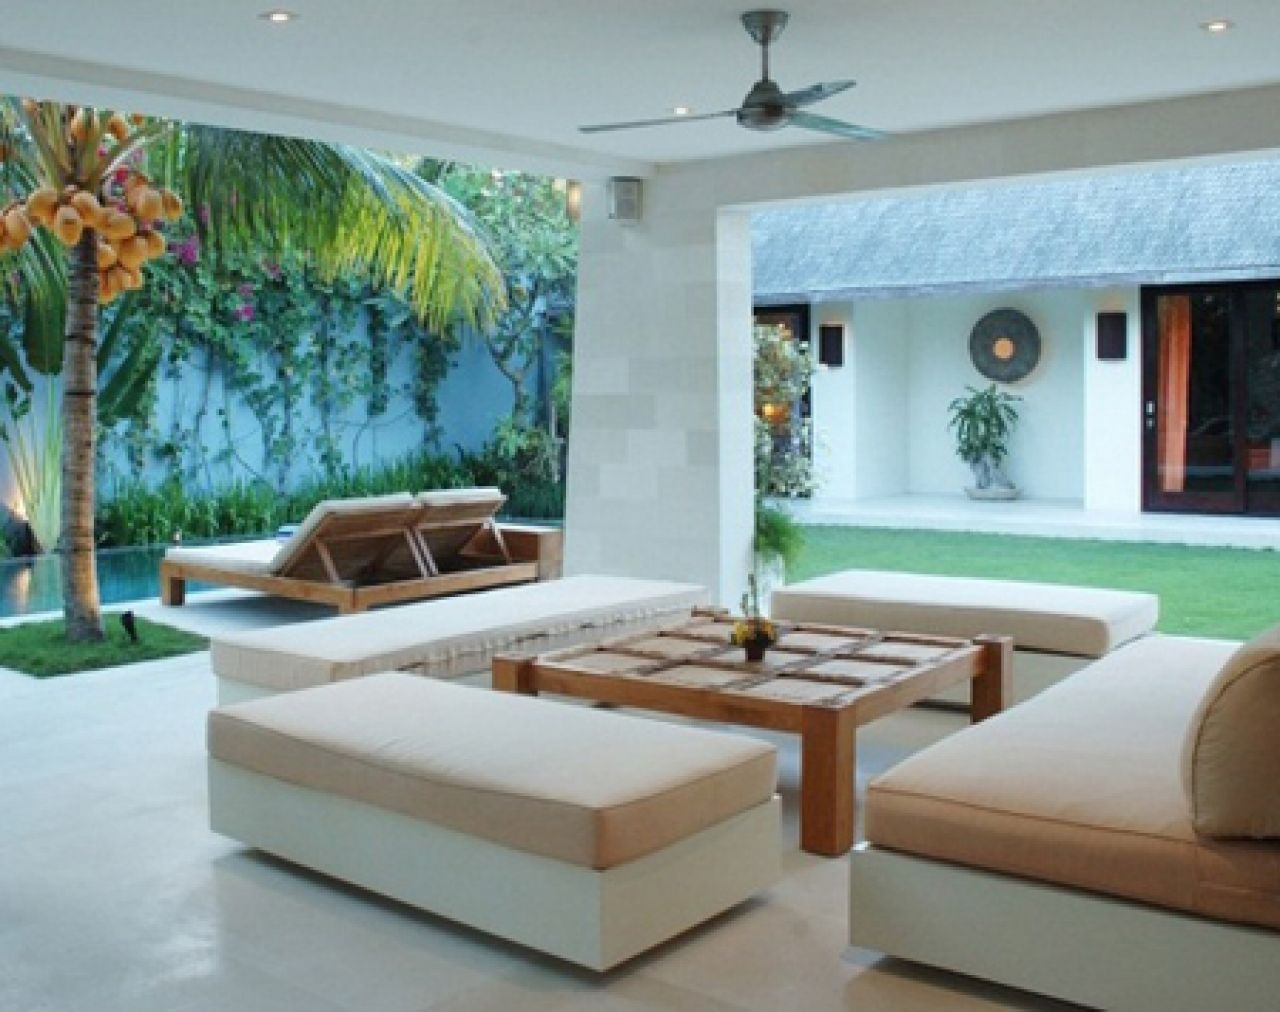 Tropical Interior House With Lounge Sofa White And Beige Color